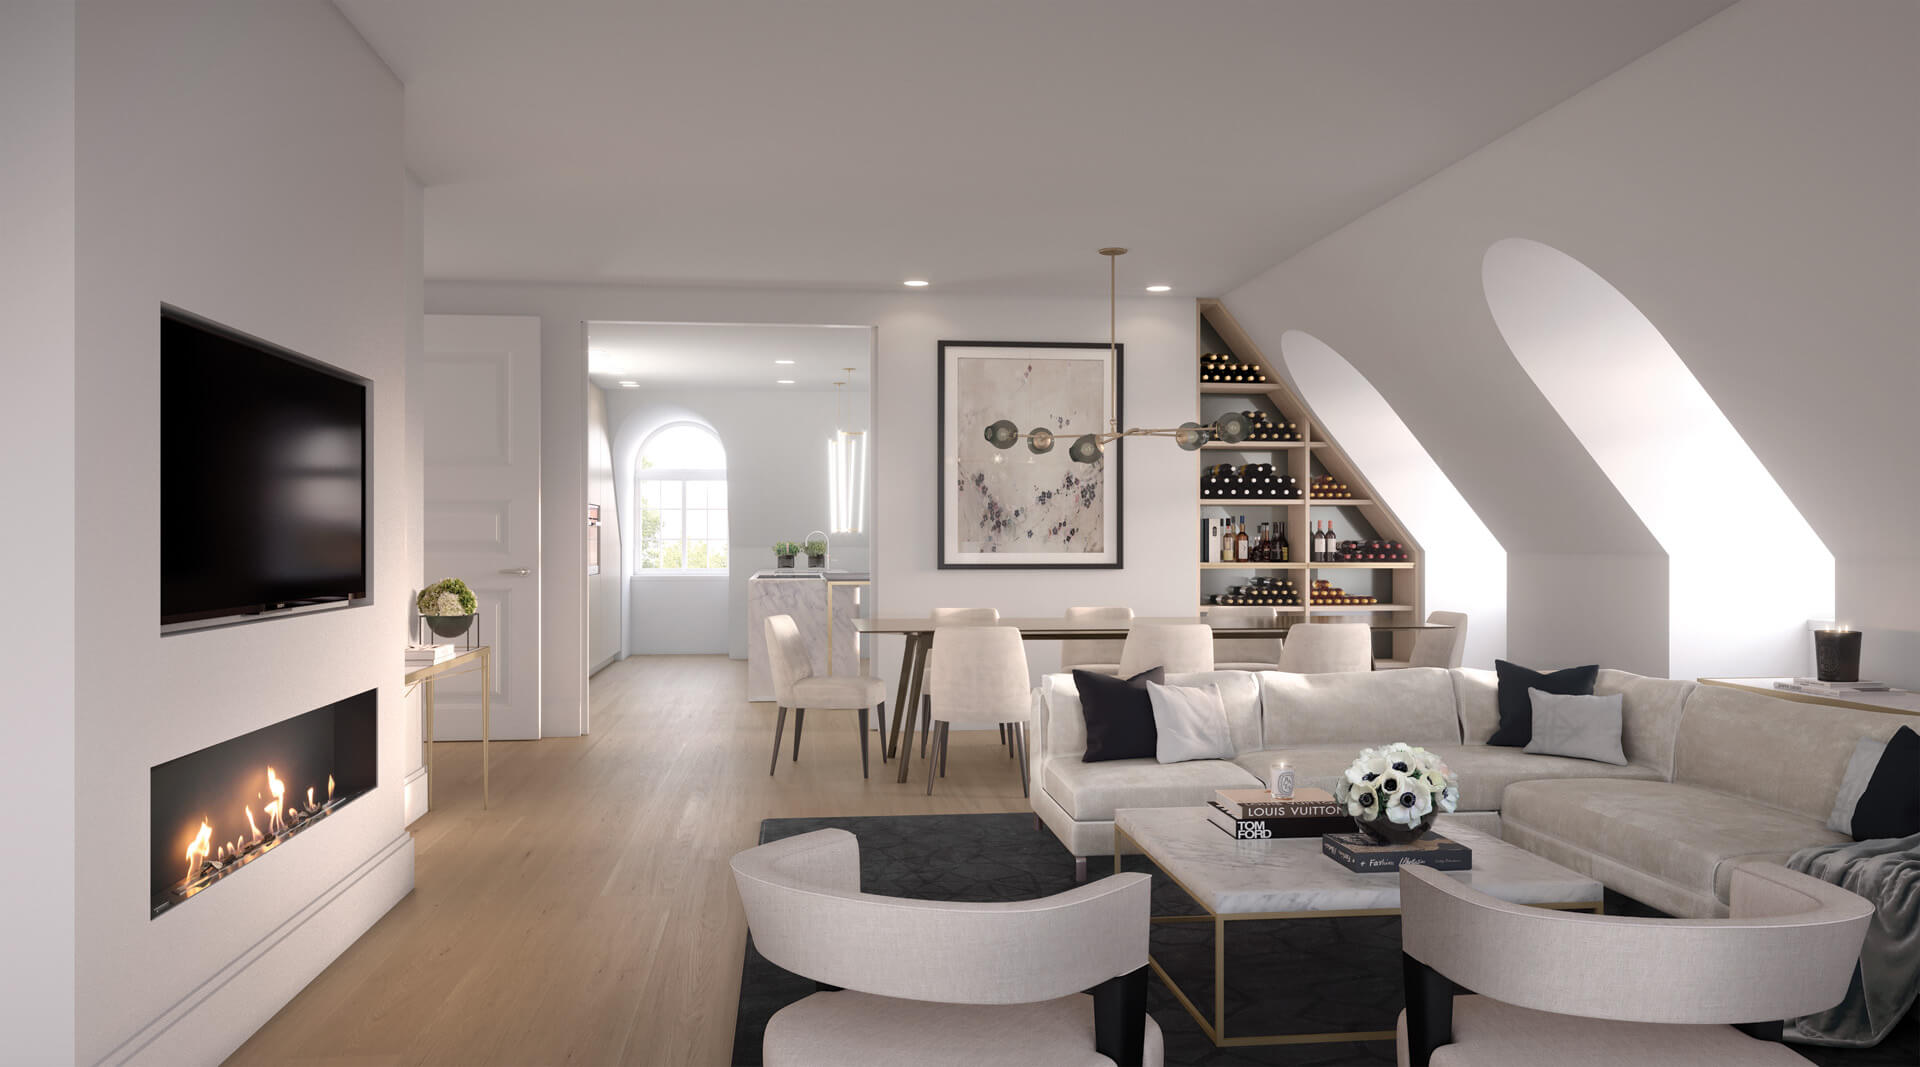 Sanders Studios_Fusion_The Birchwood_Living Room CGI_02